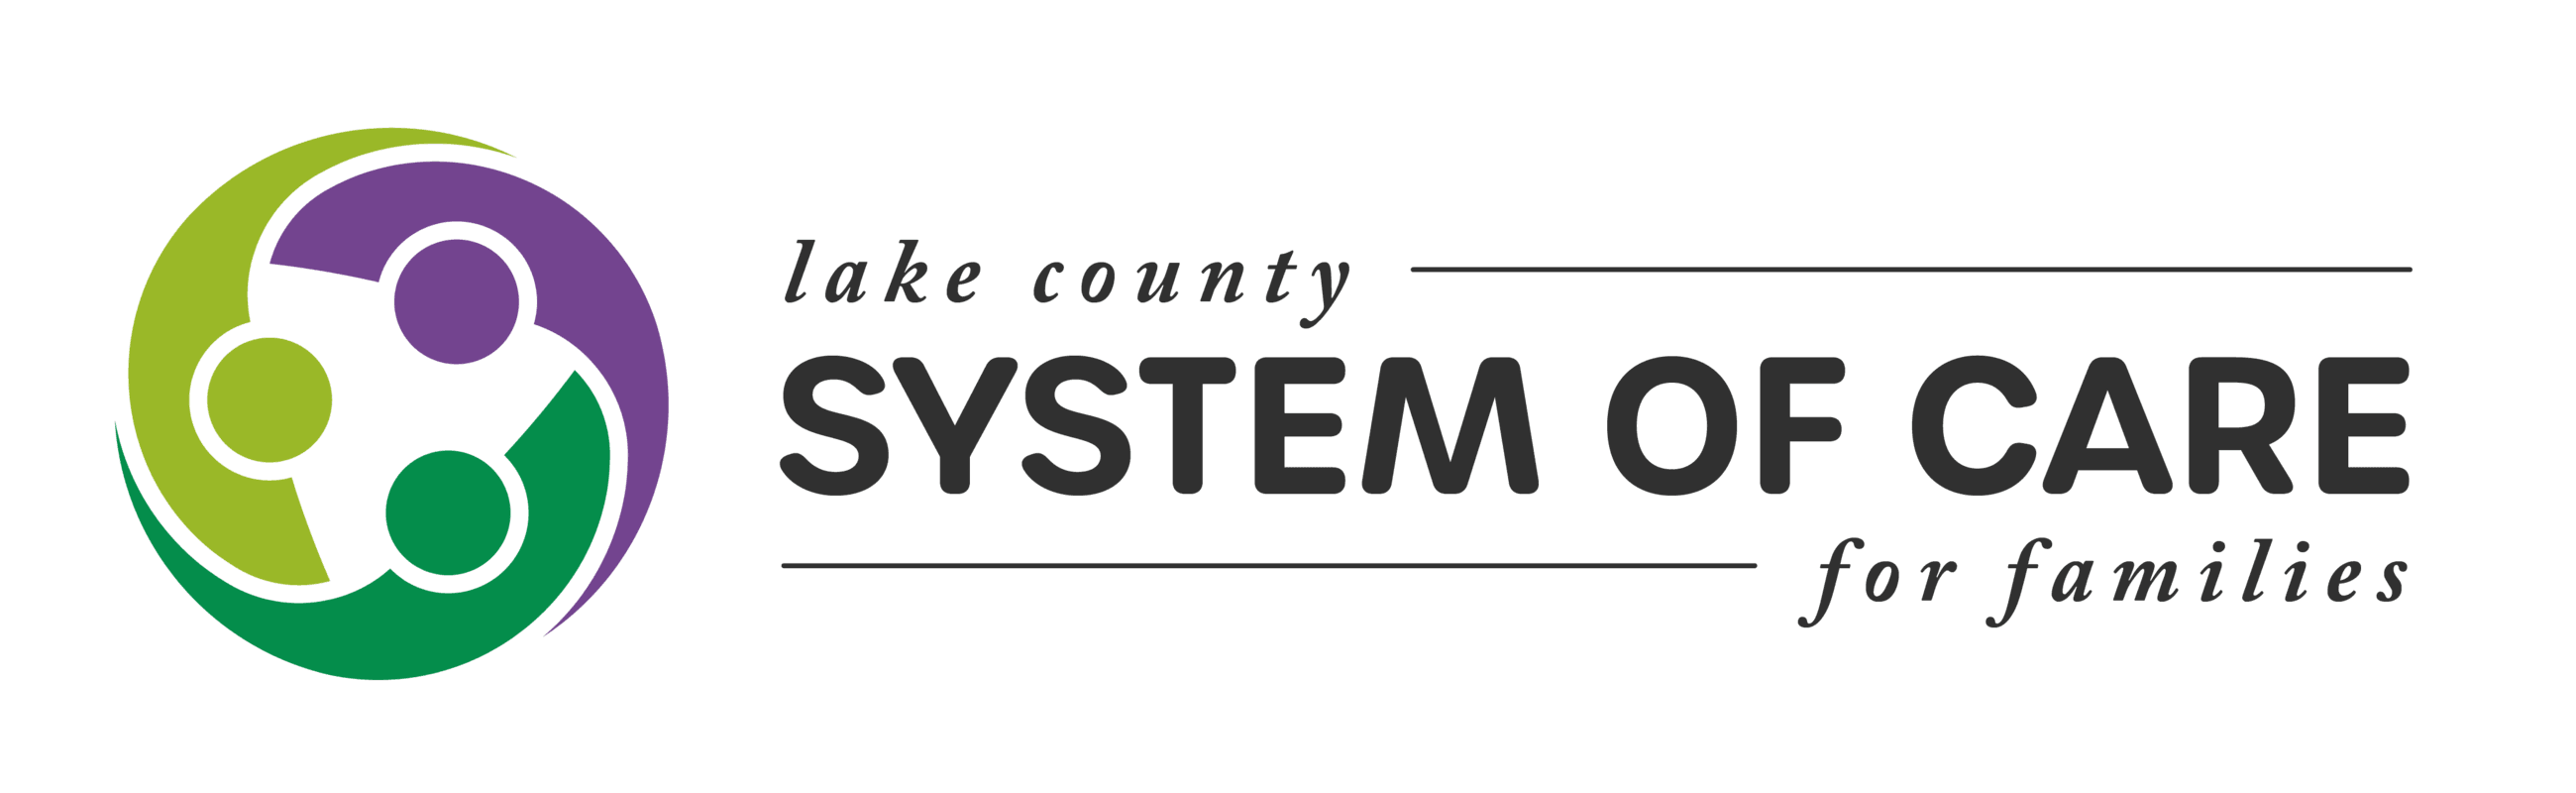 Lake County System of Care for Families logo